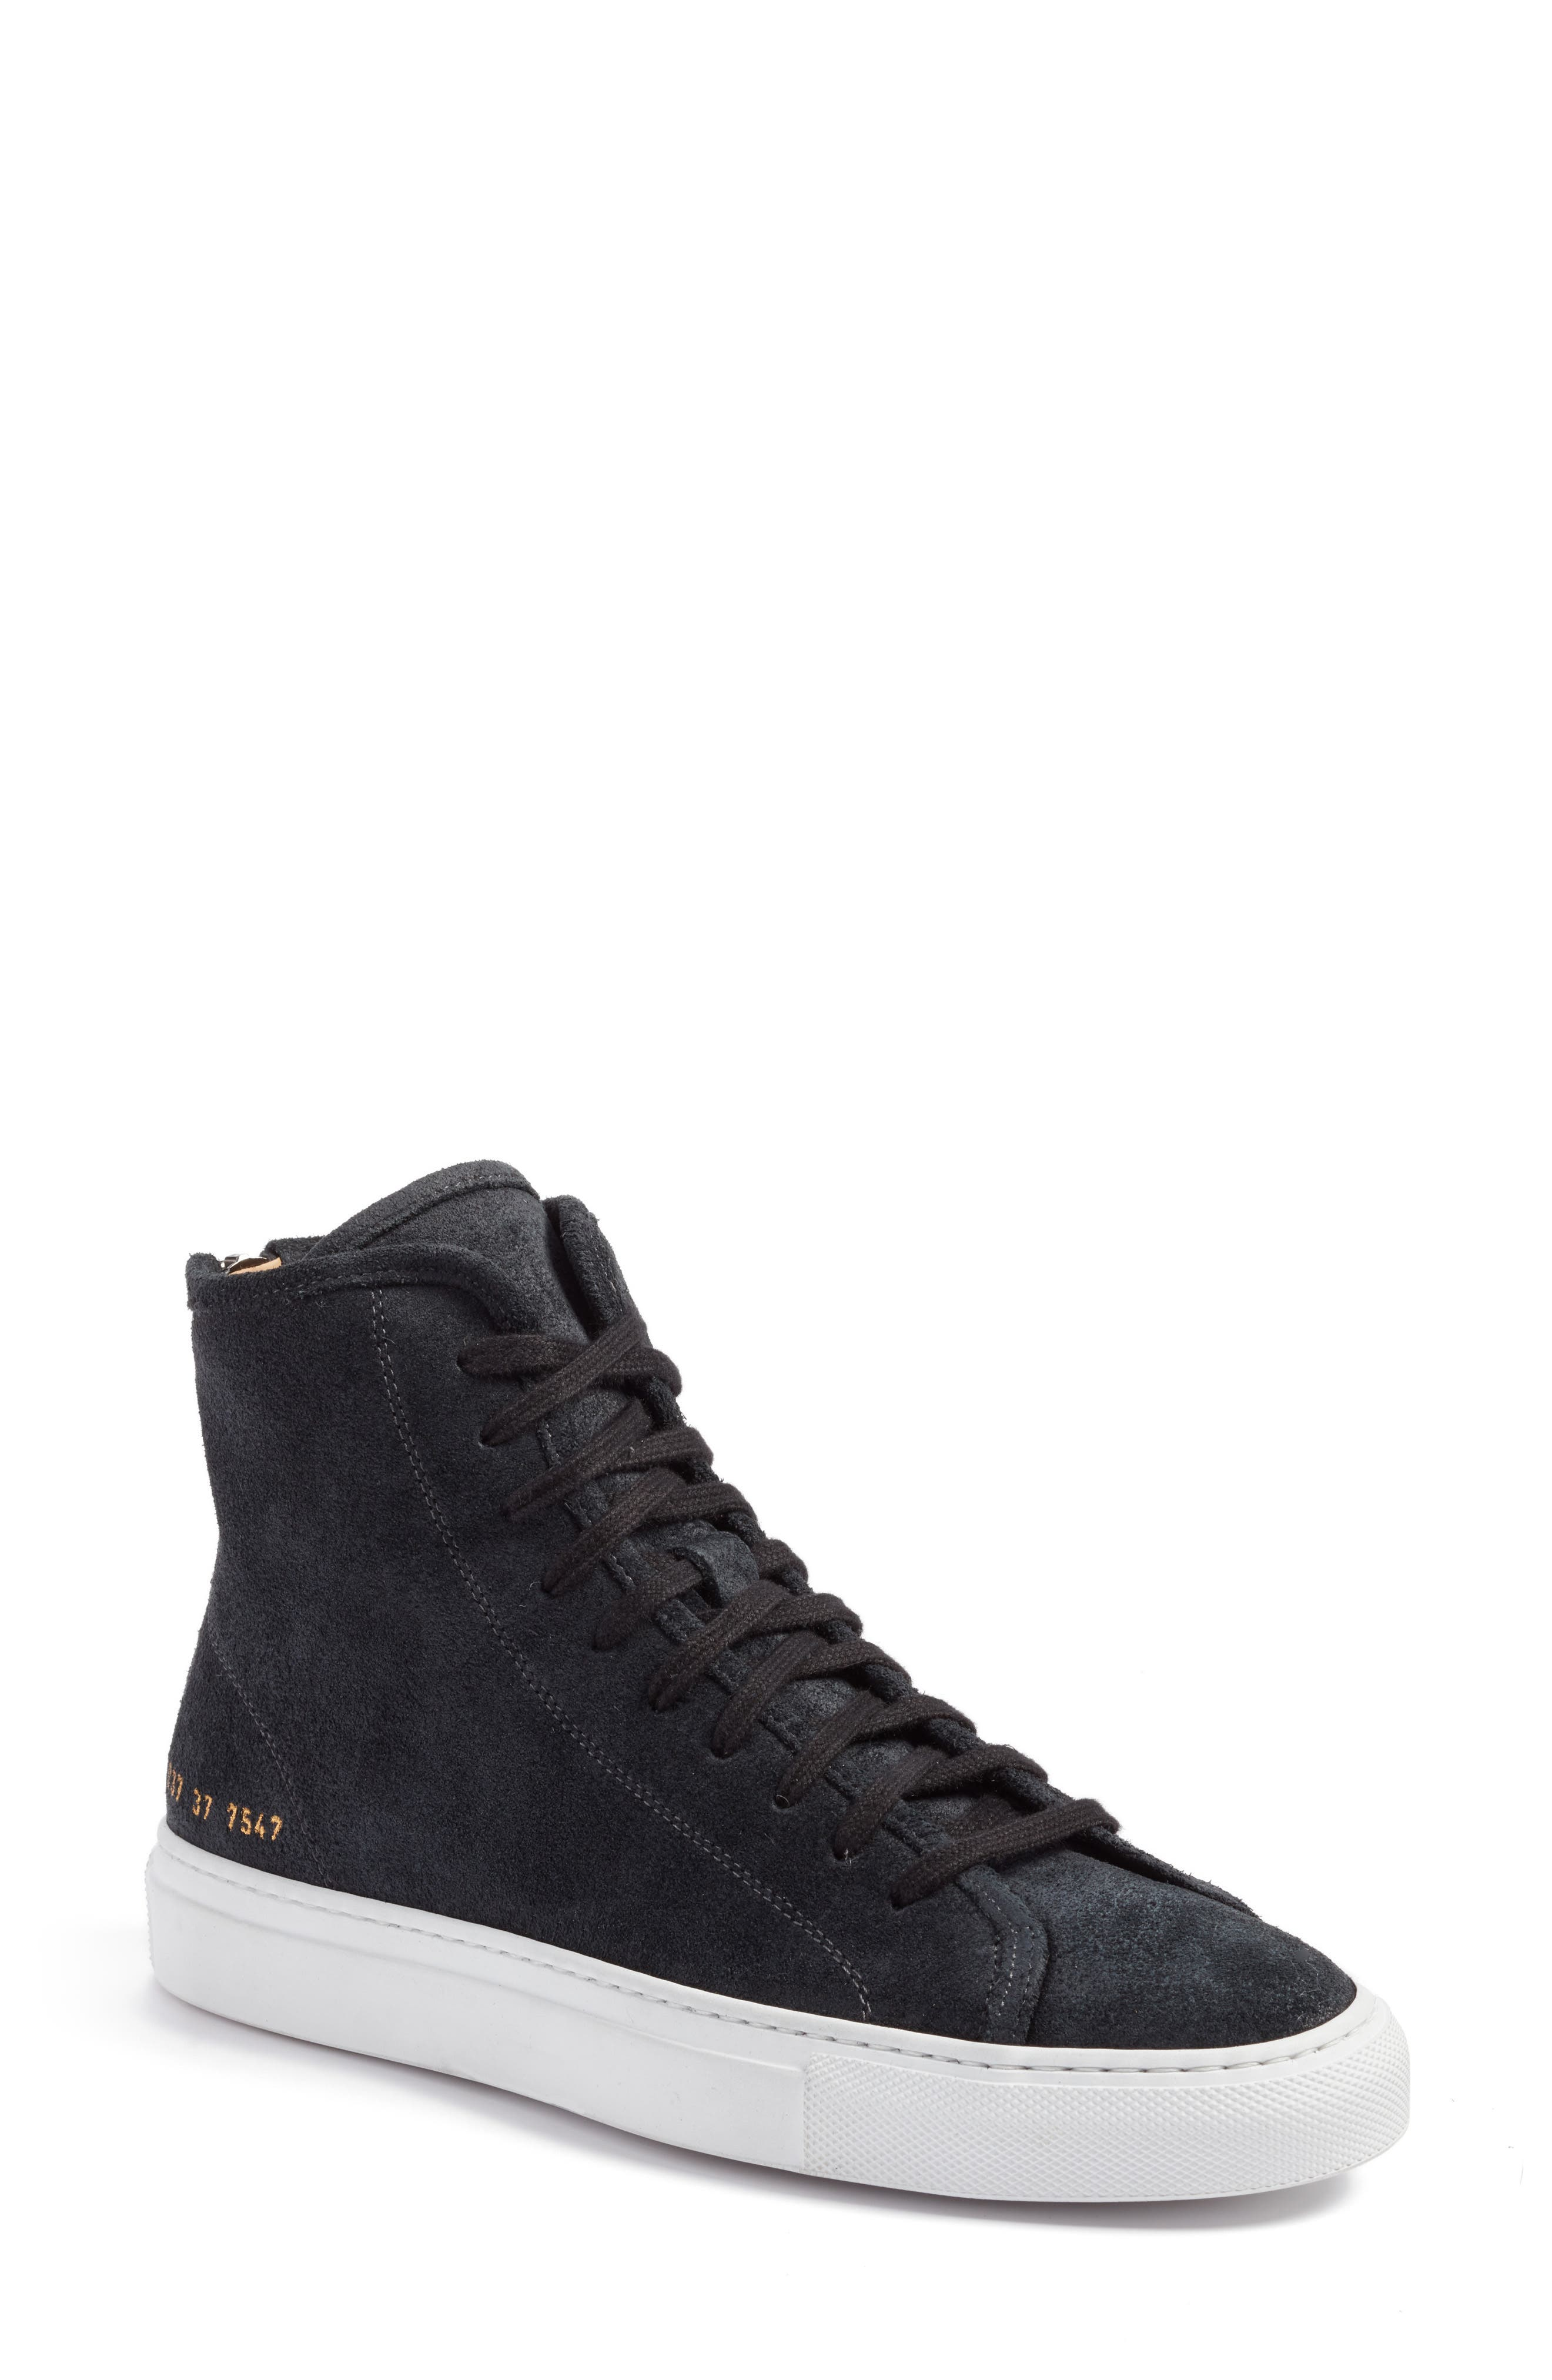 common projects women's high tops